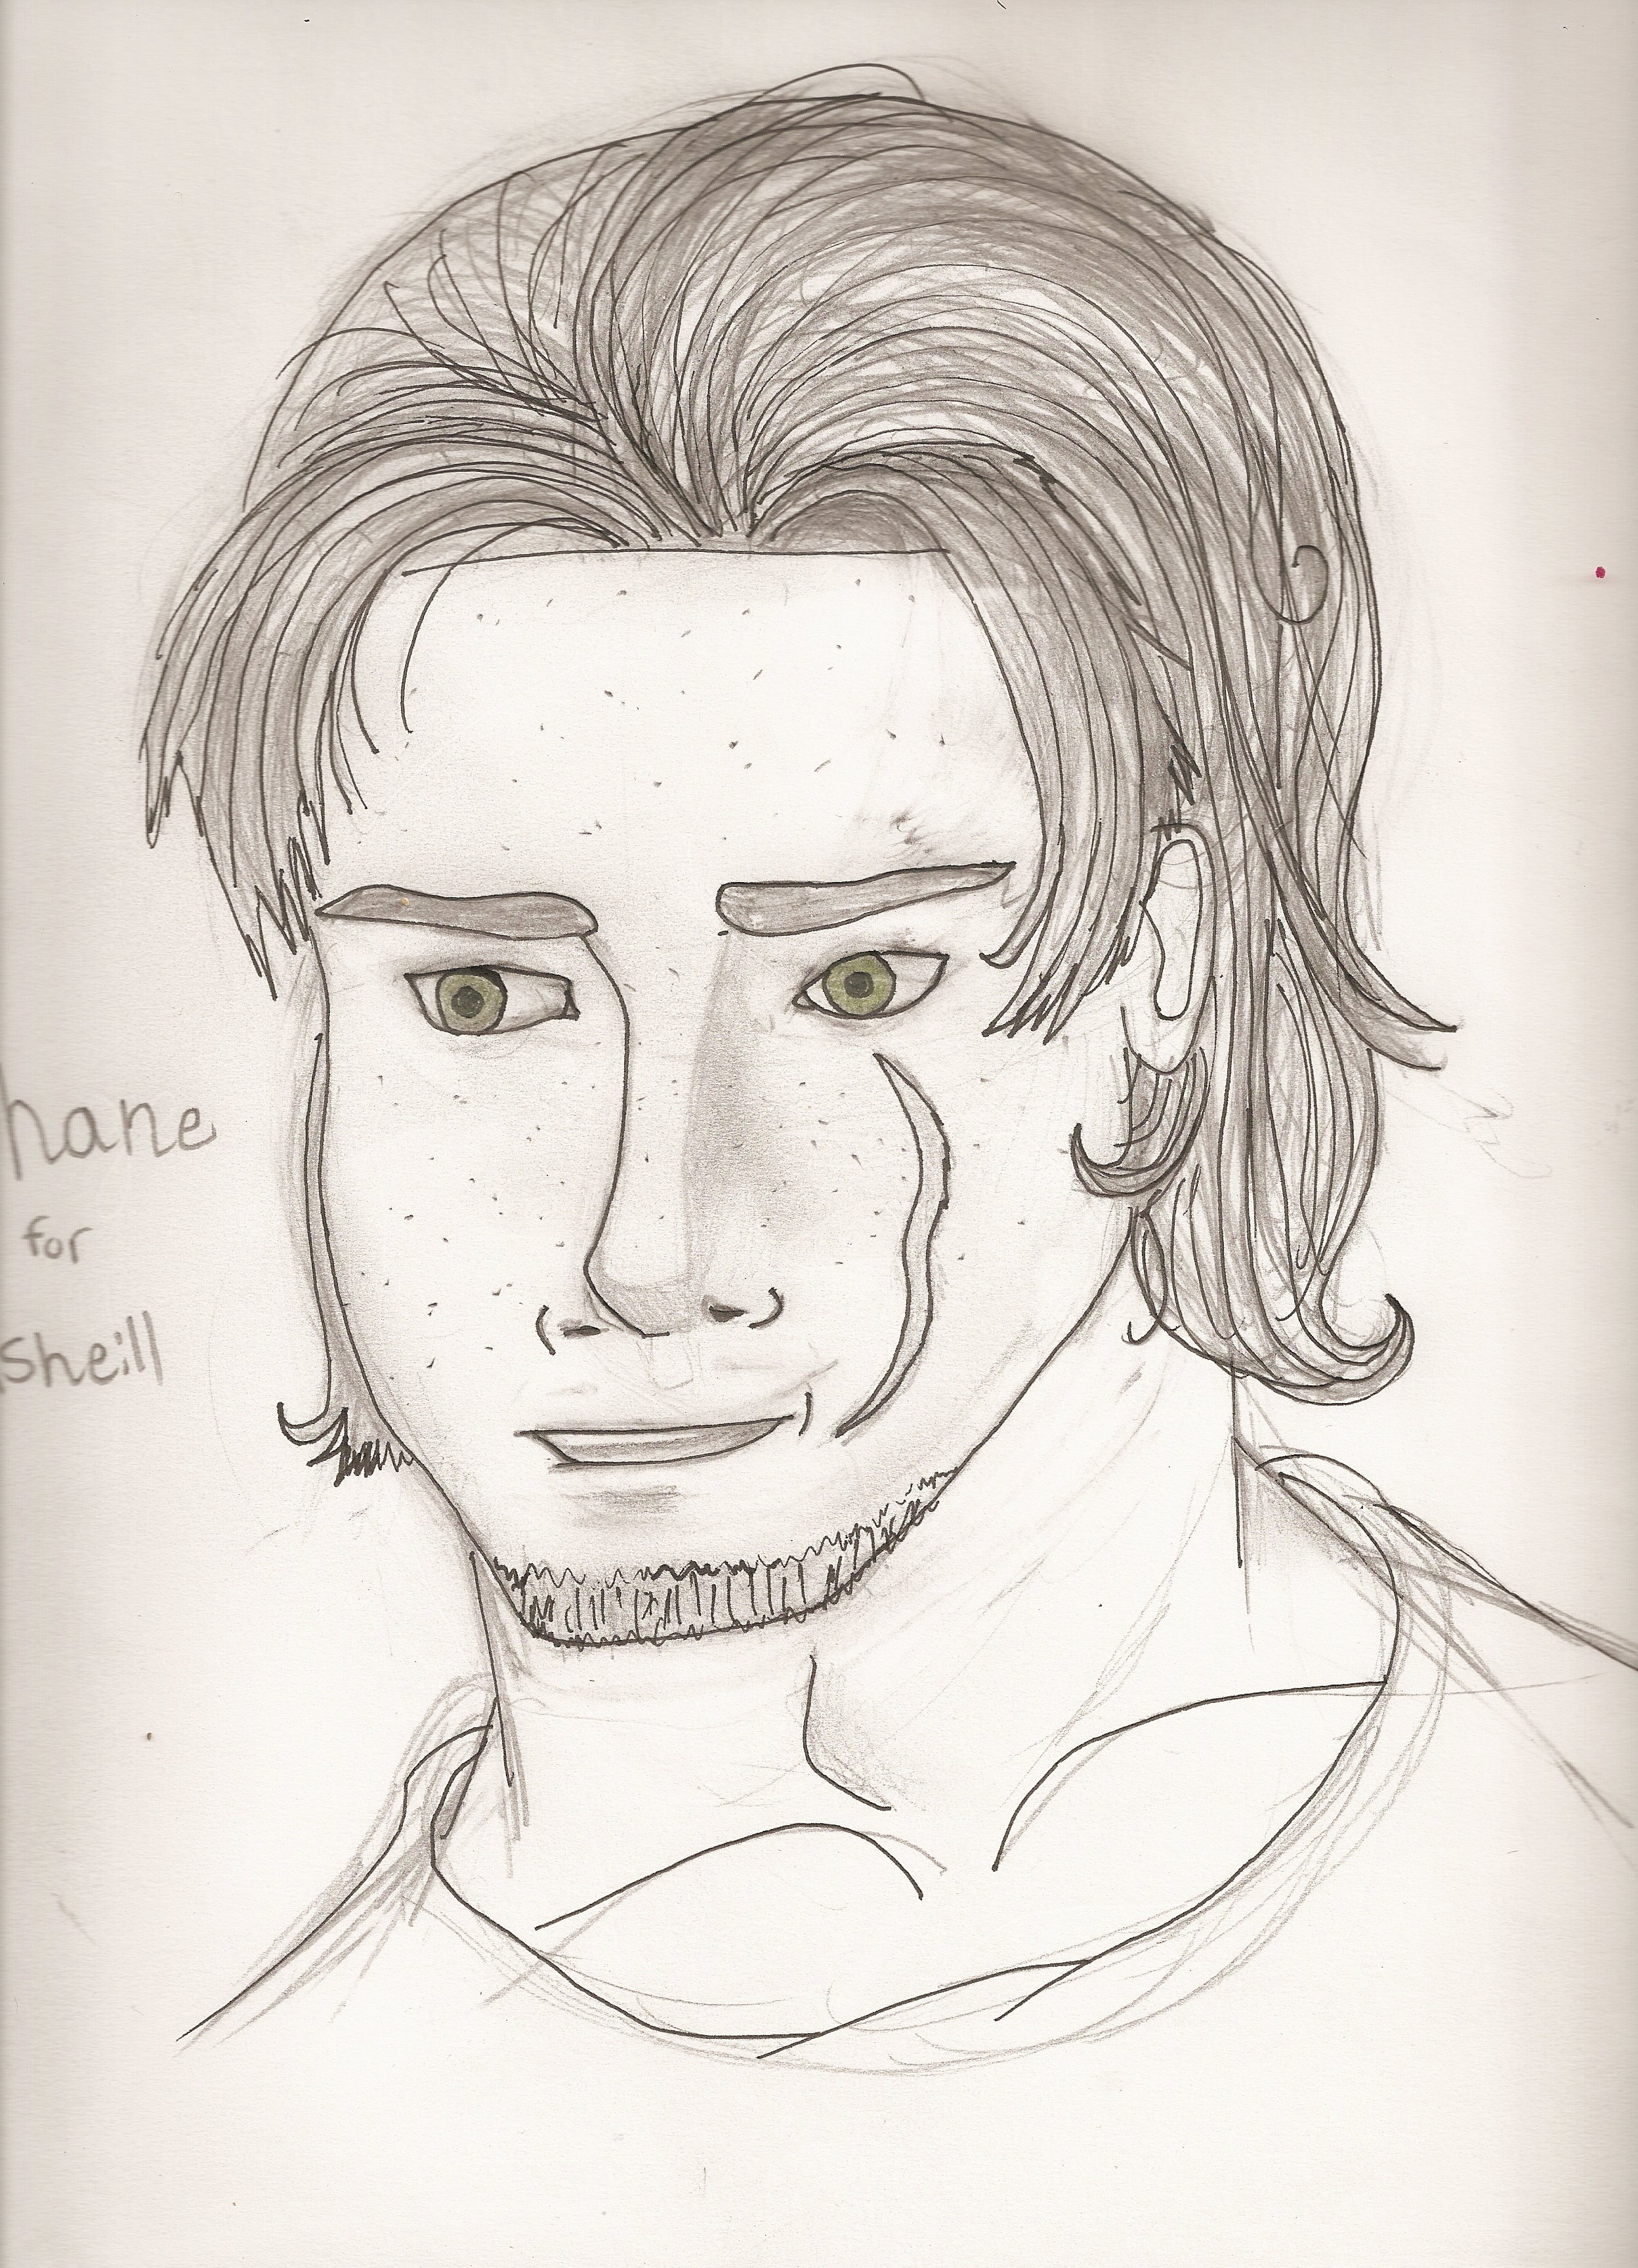 Arttrade- Shane for Asheill by ArtticWitchica